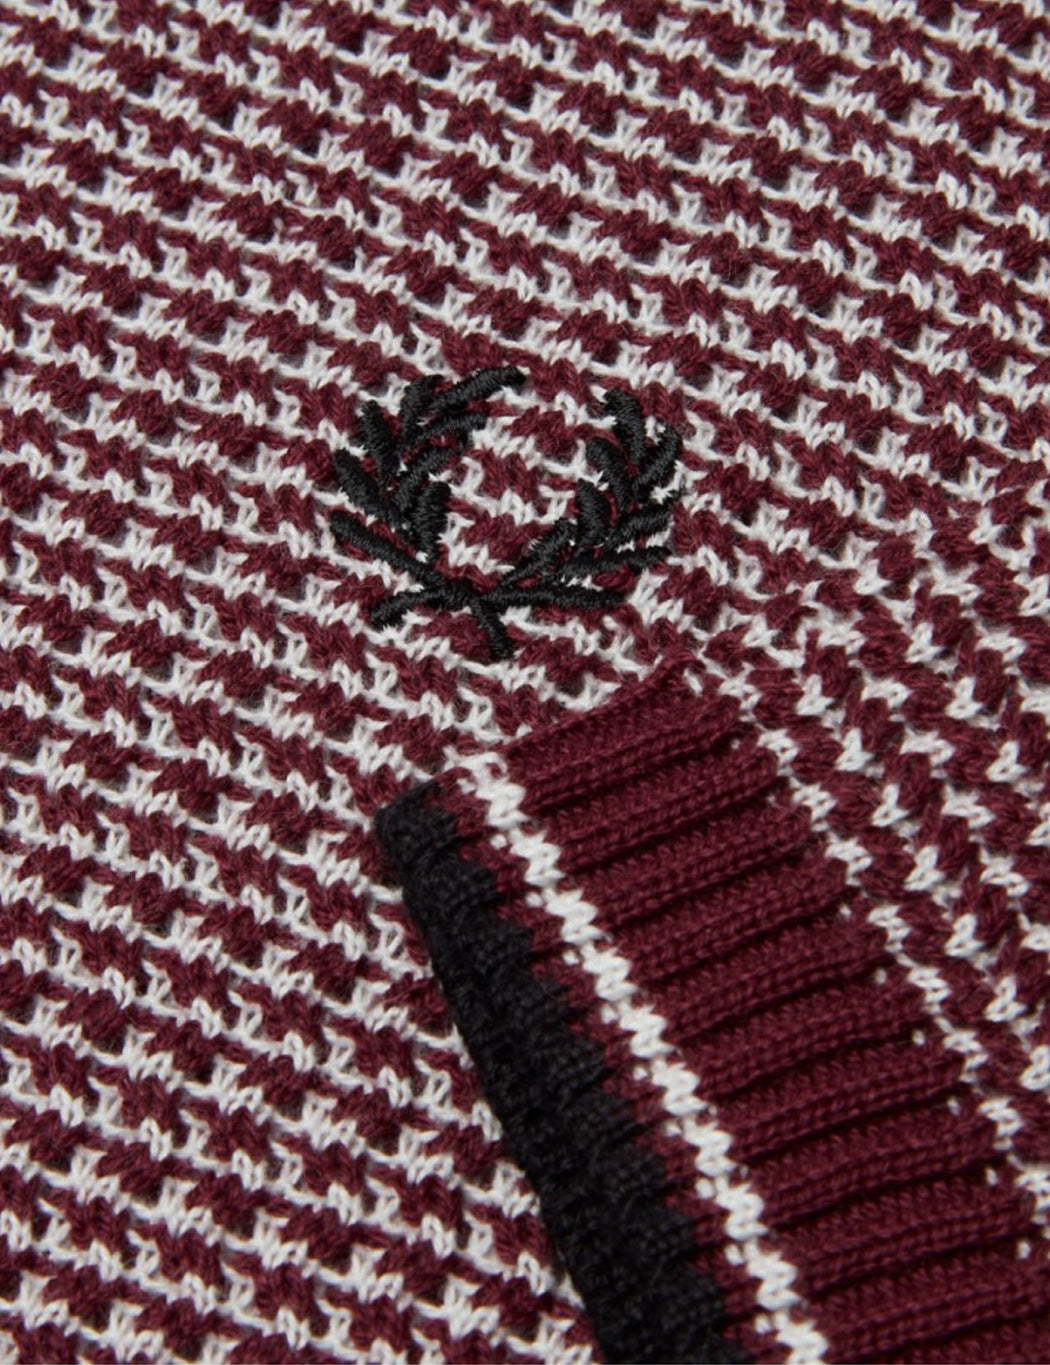 599c4474d98 ... Fred Perry Re-issues Two Colour Texture Knit Polo Shirt - Maroon ...